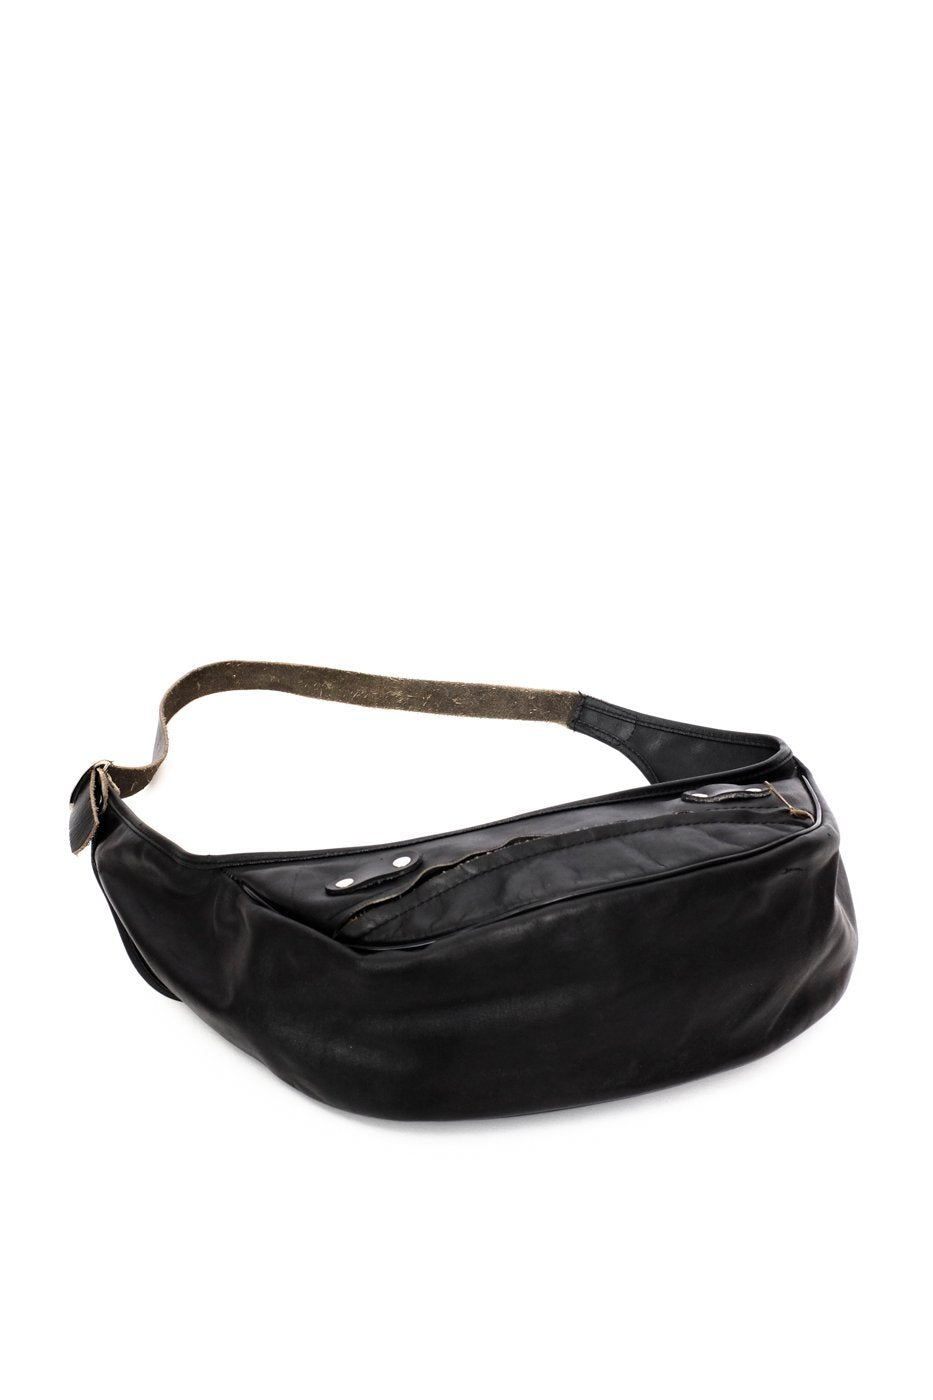 0407_VINTAGE BLACK LEATHER HIP BAG